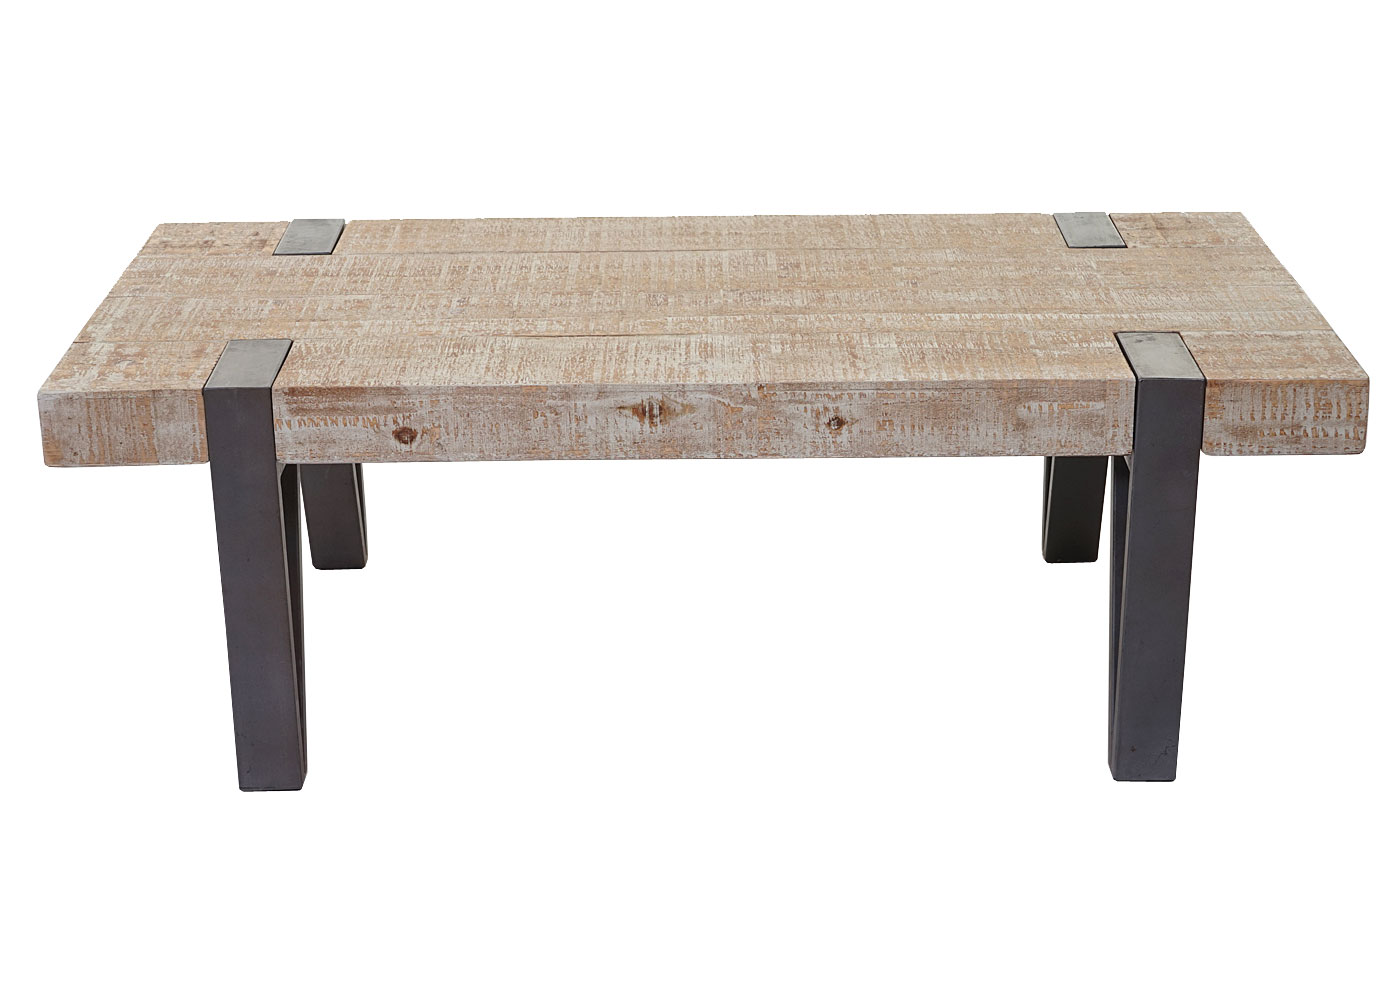 table basse de salon hwc a15b sapin bois massif rustique 40x120x60cm ebay. Black Bedroom Furniture Sets. Home Design Ideas